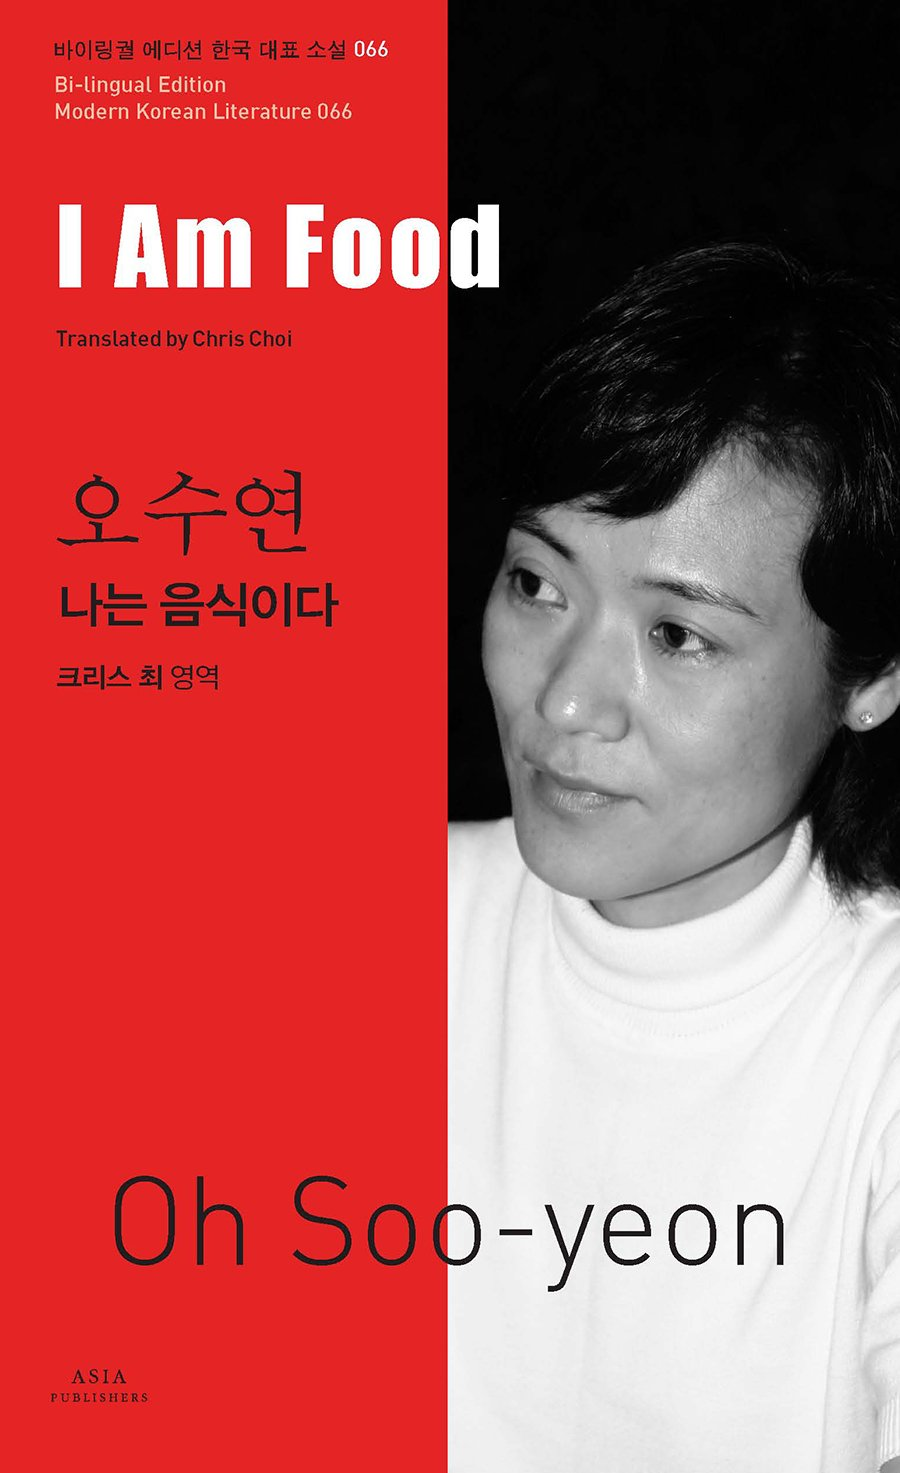 I Am Food (Bi-lingual Edition Modern Korean Literature, Volume 66) ebook